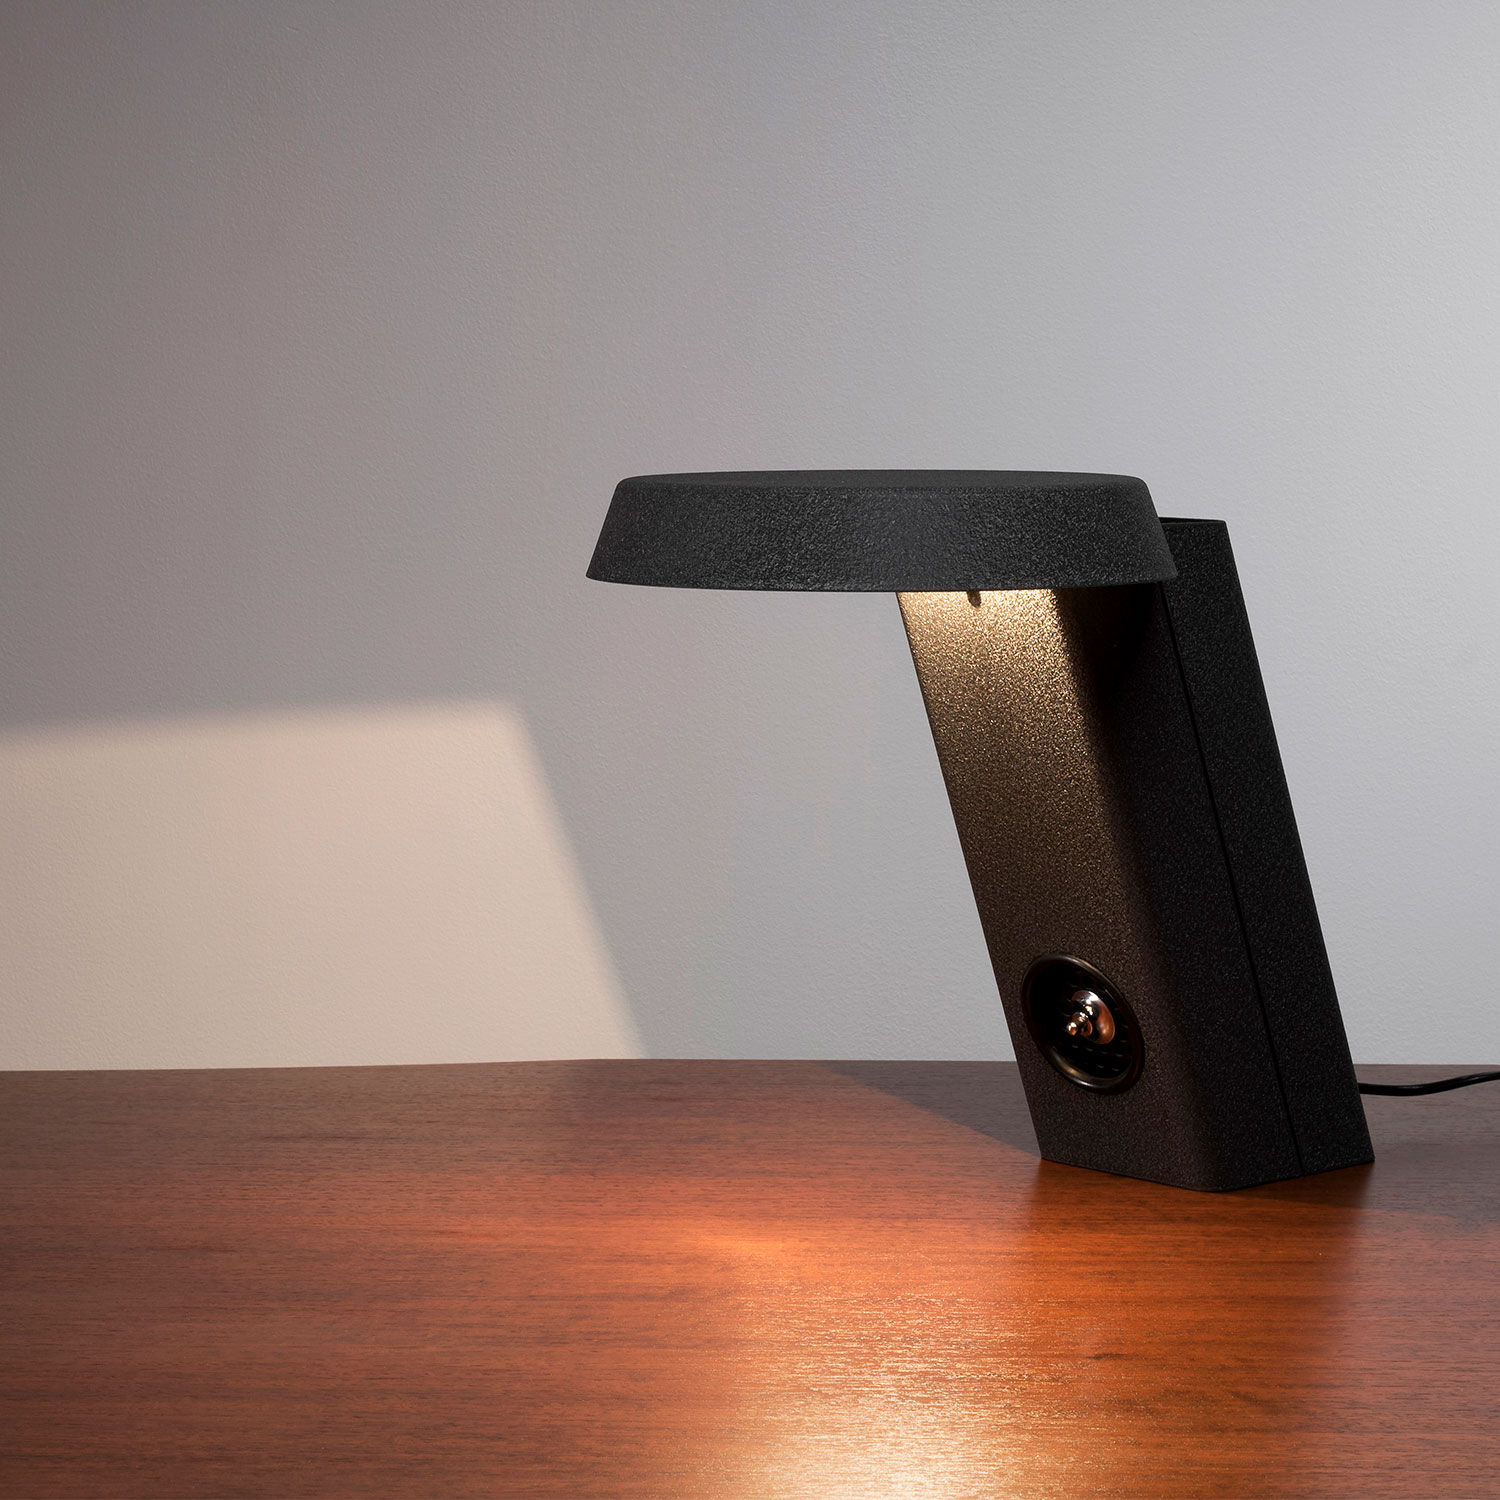 Gino Sarfatti  |                                  Desk lamp, model 607